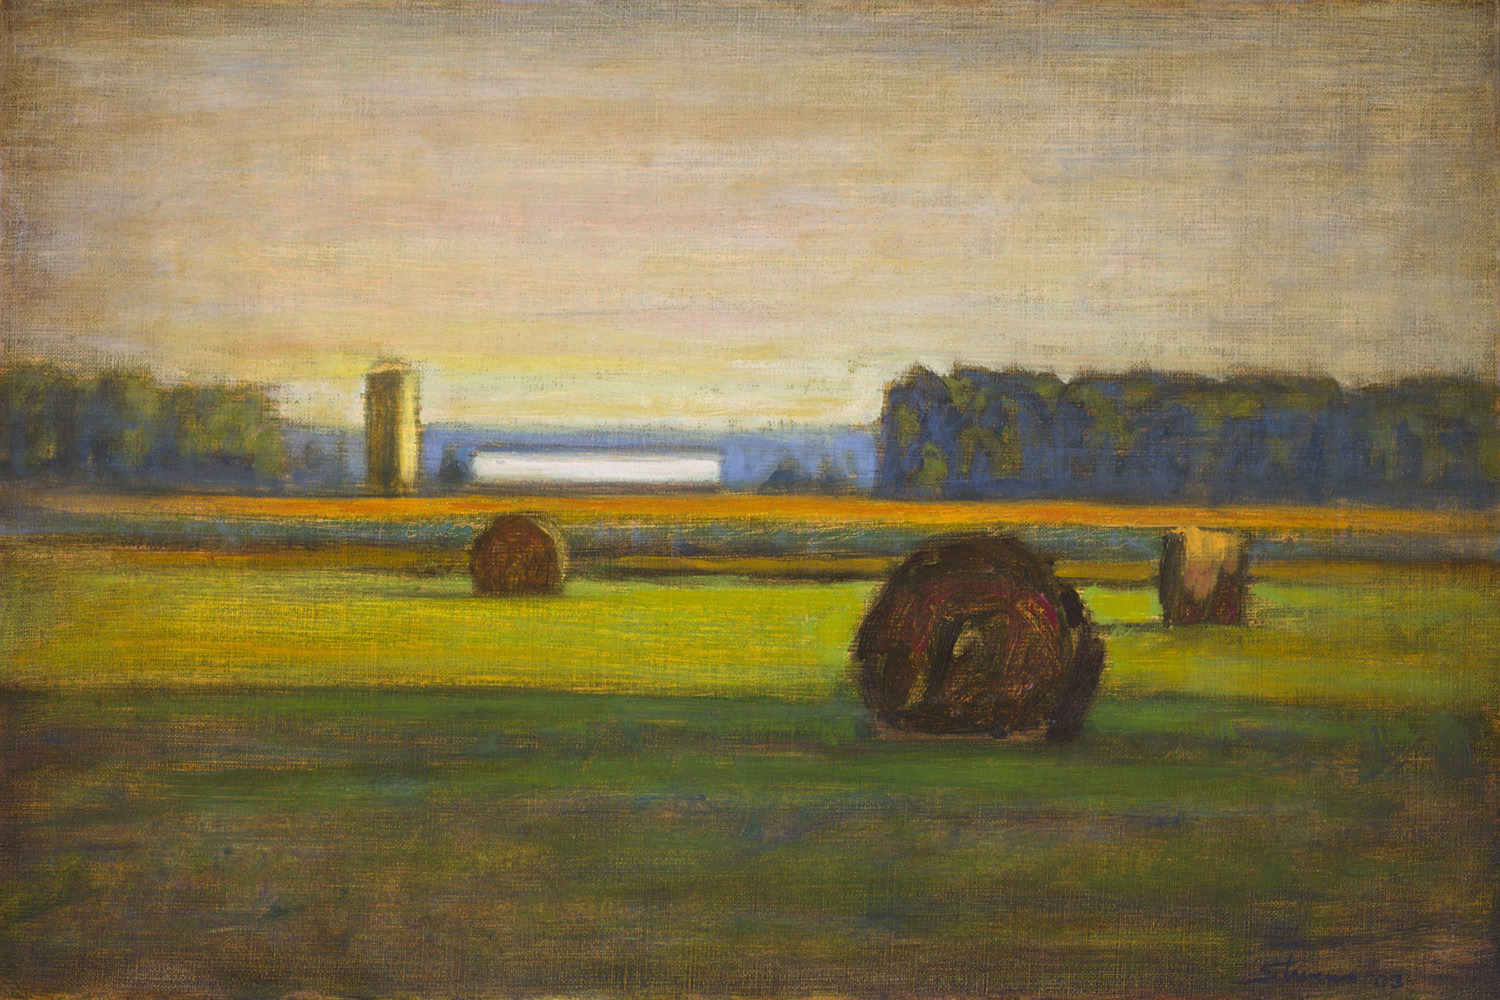 Pastoral Harmony  | oil on panel | 14 x 20"